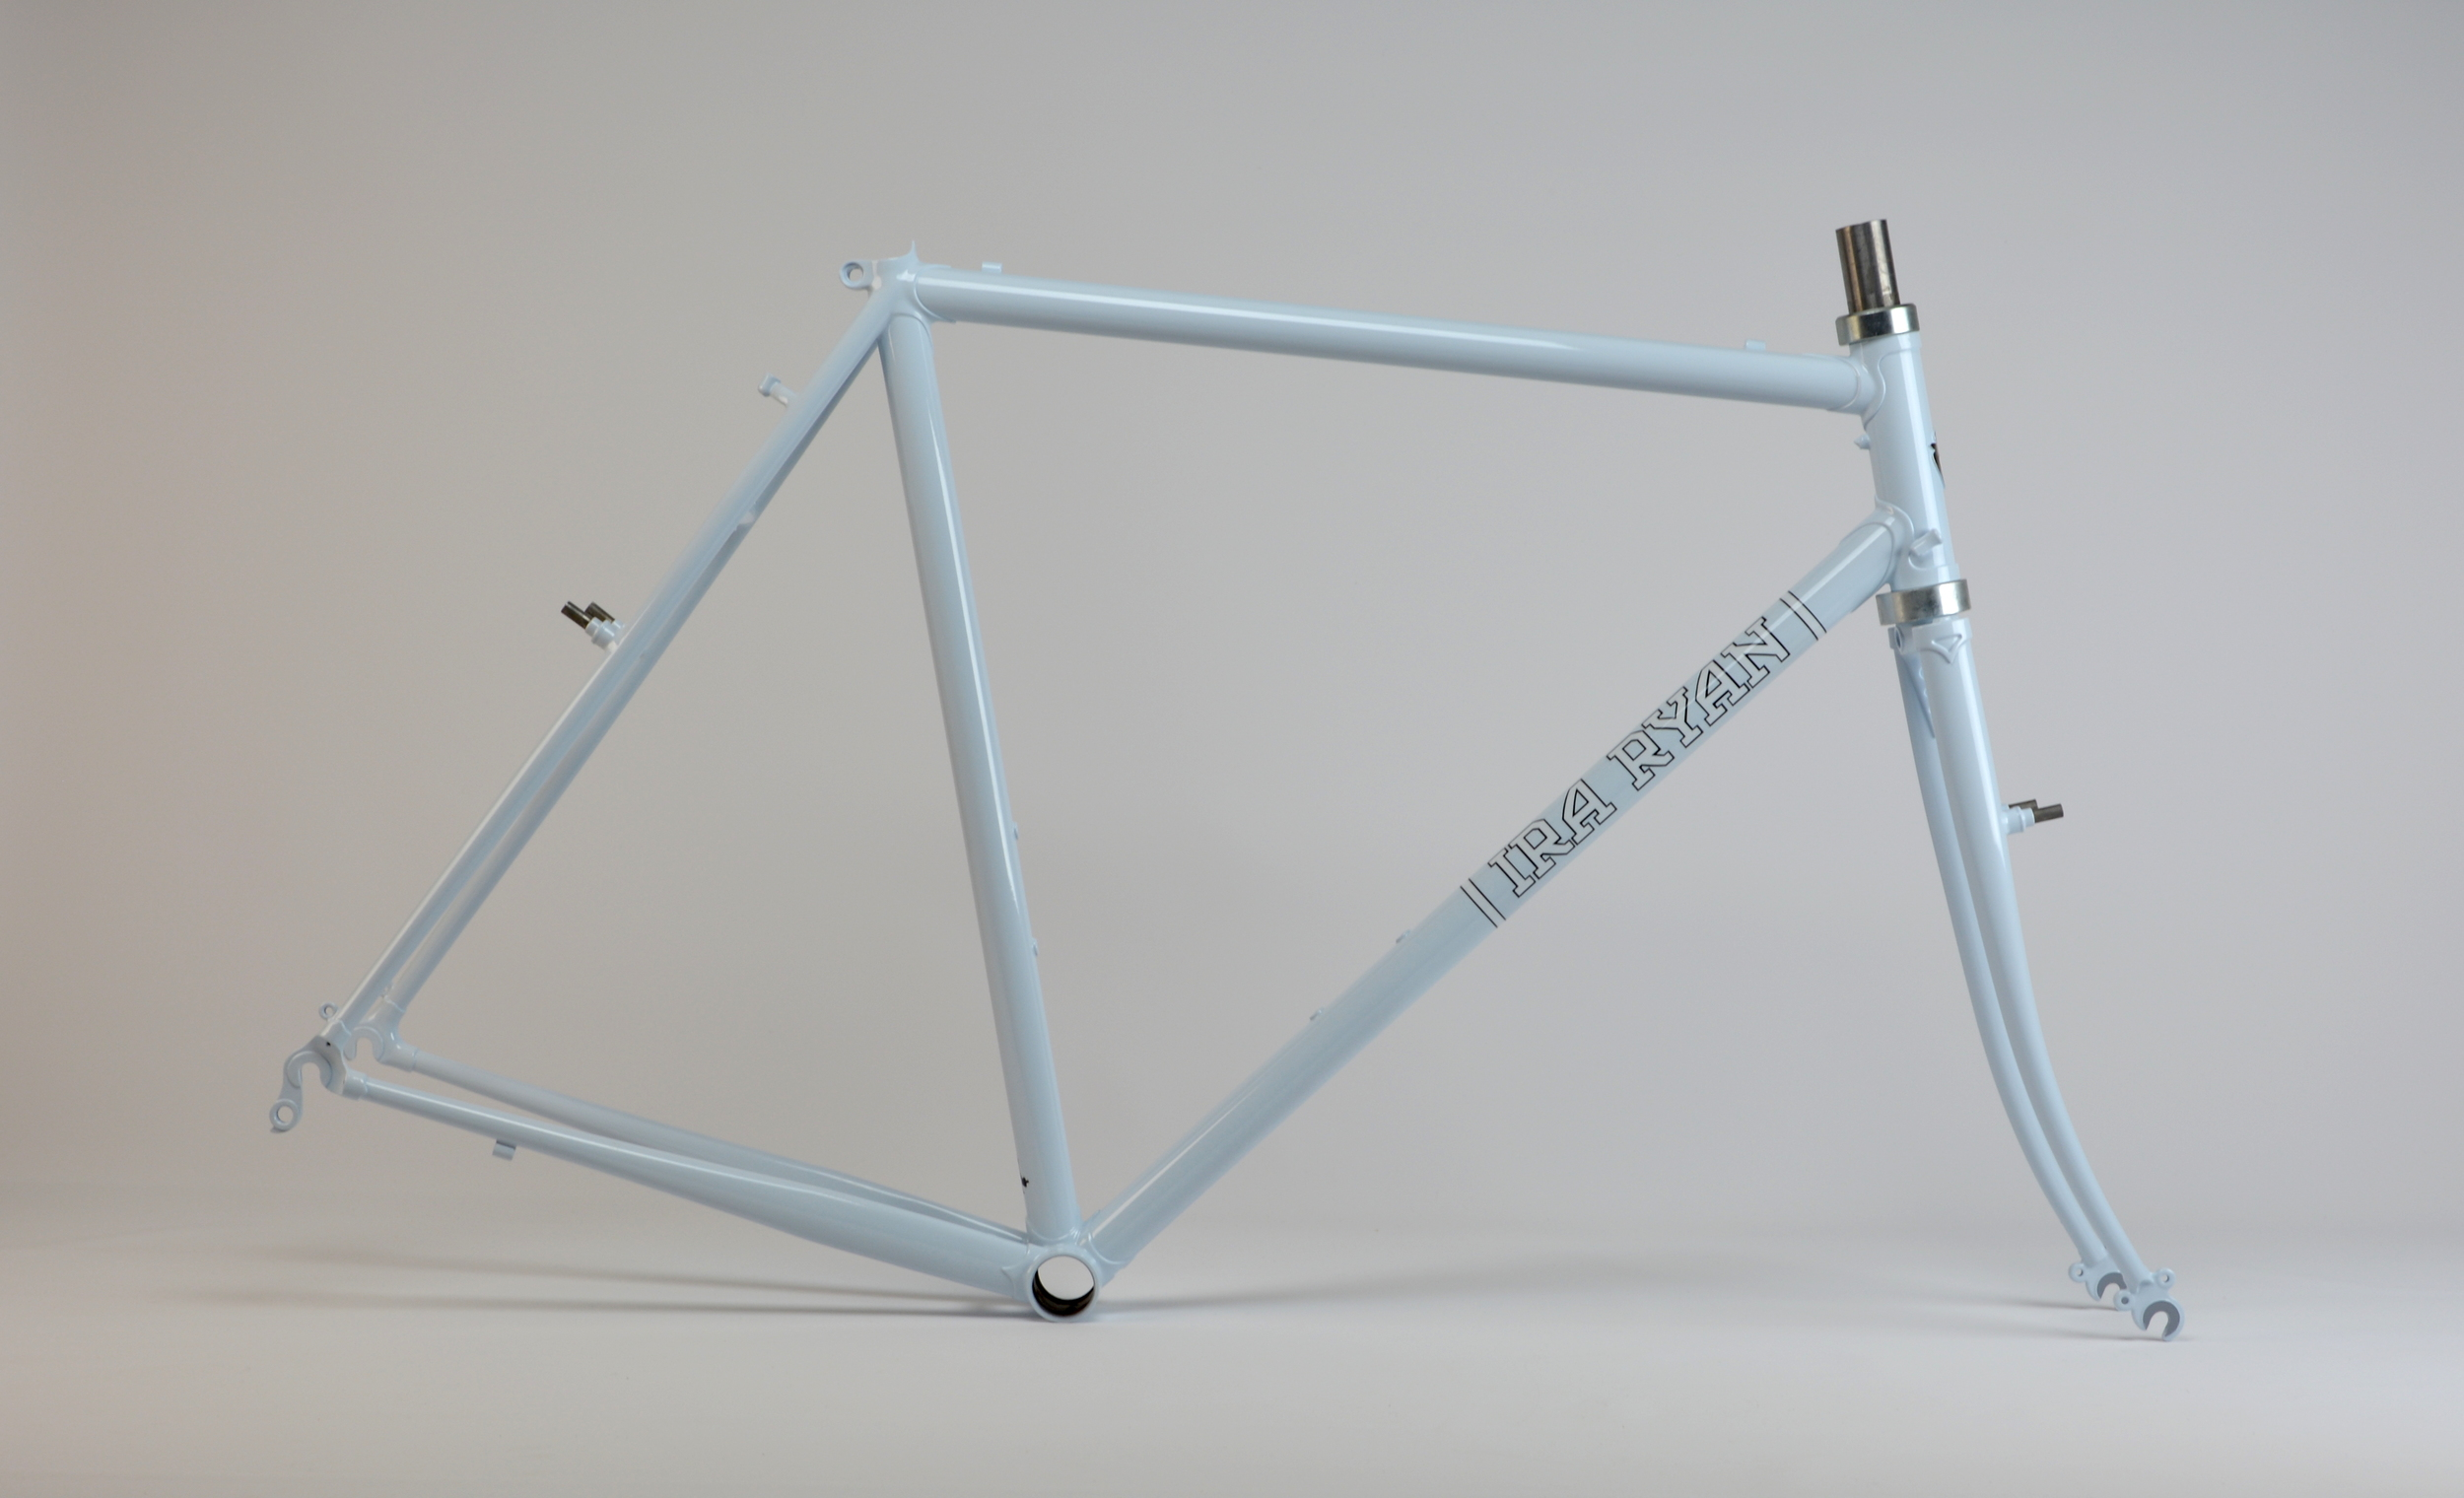 ira-ryan-cyclocross-refinish_24935251521_o.jpg